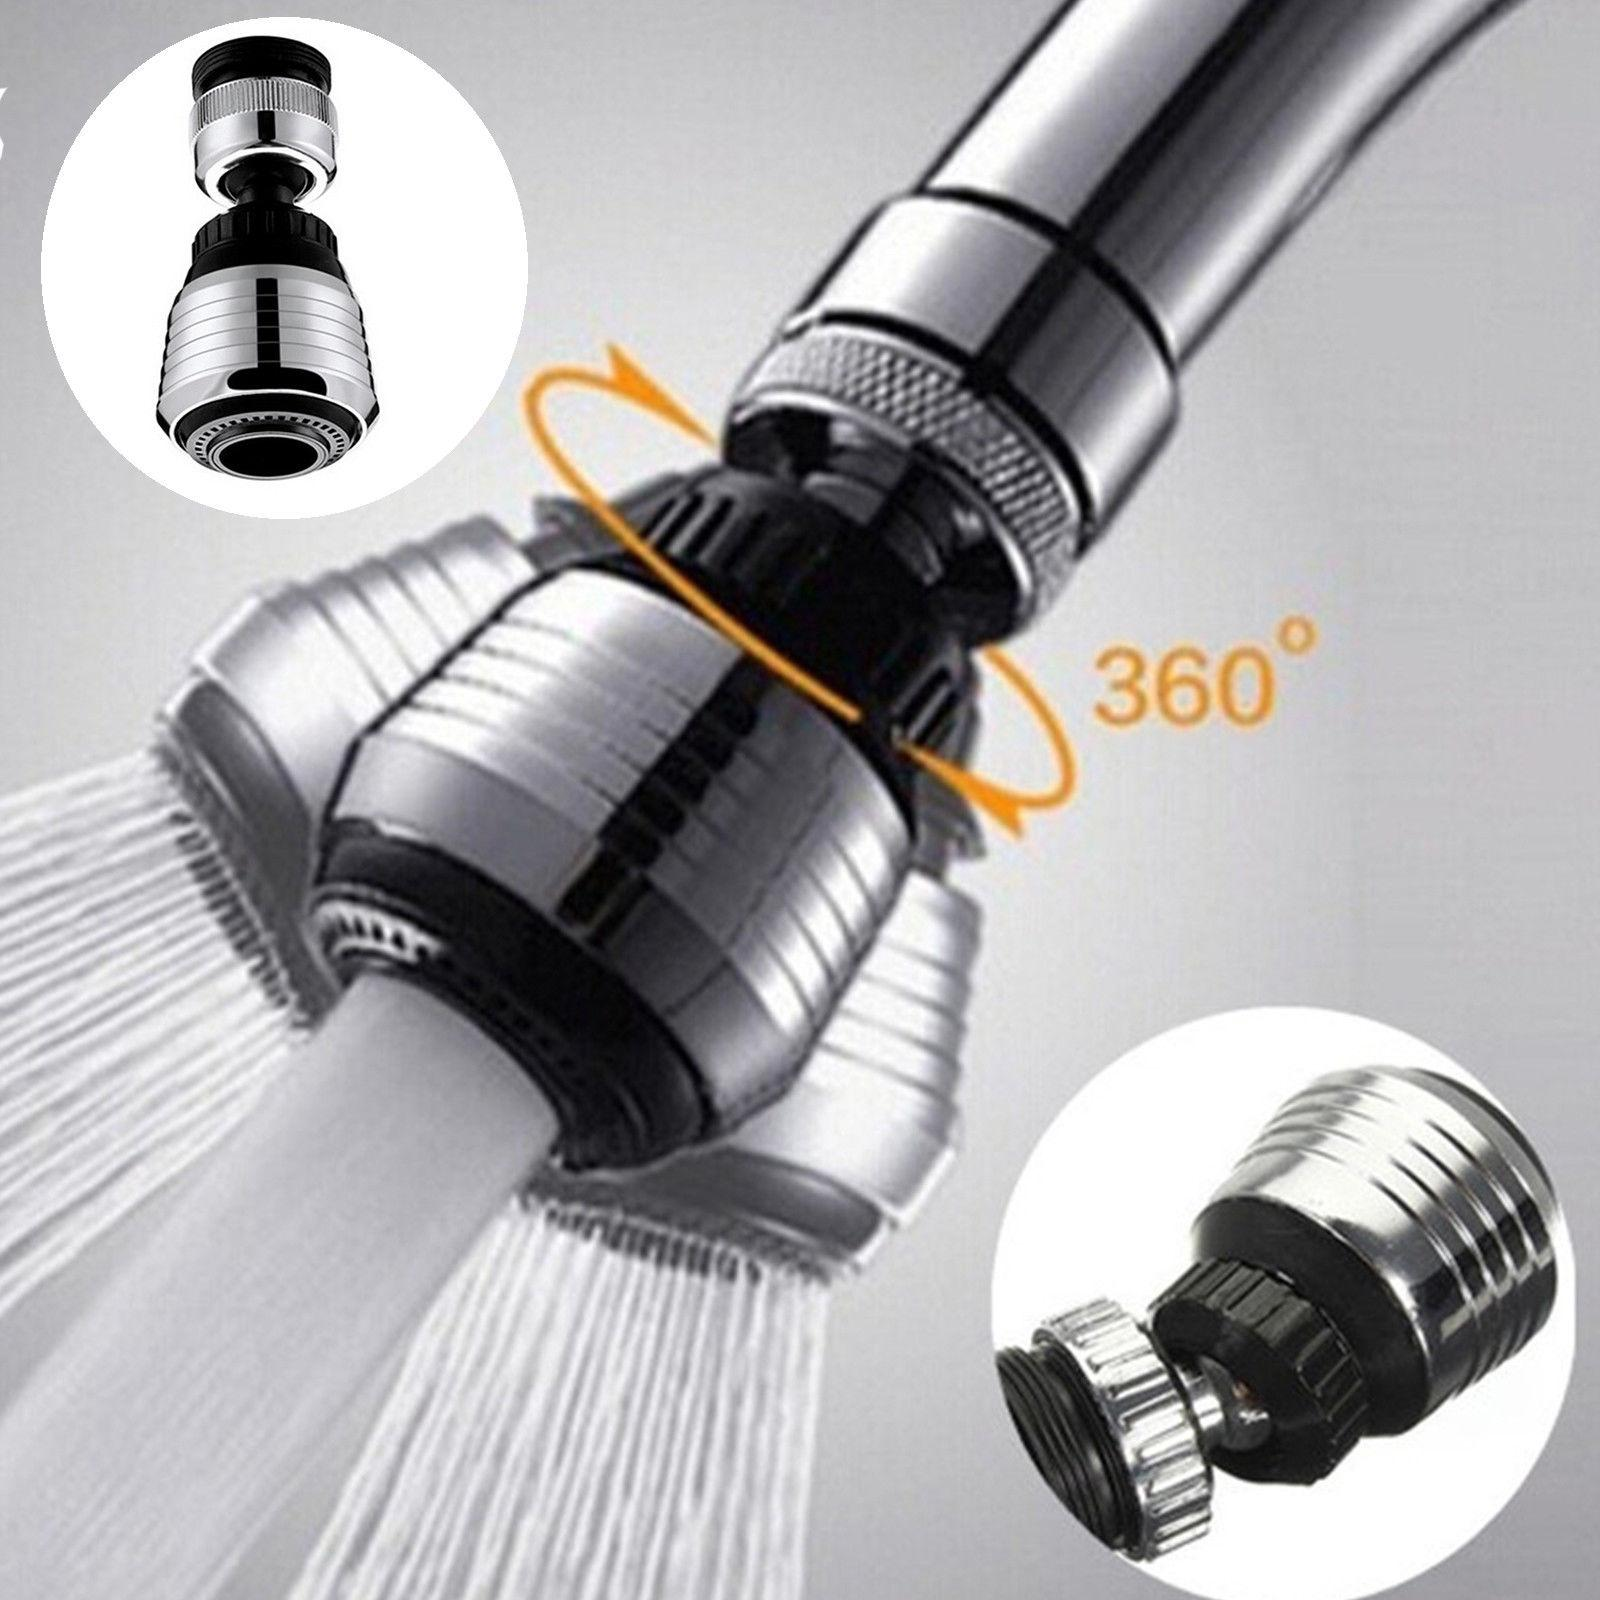 2018 360 Rotate Swivel Faucet Nozzle Filter Adapter Water Saving Tap ...